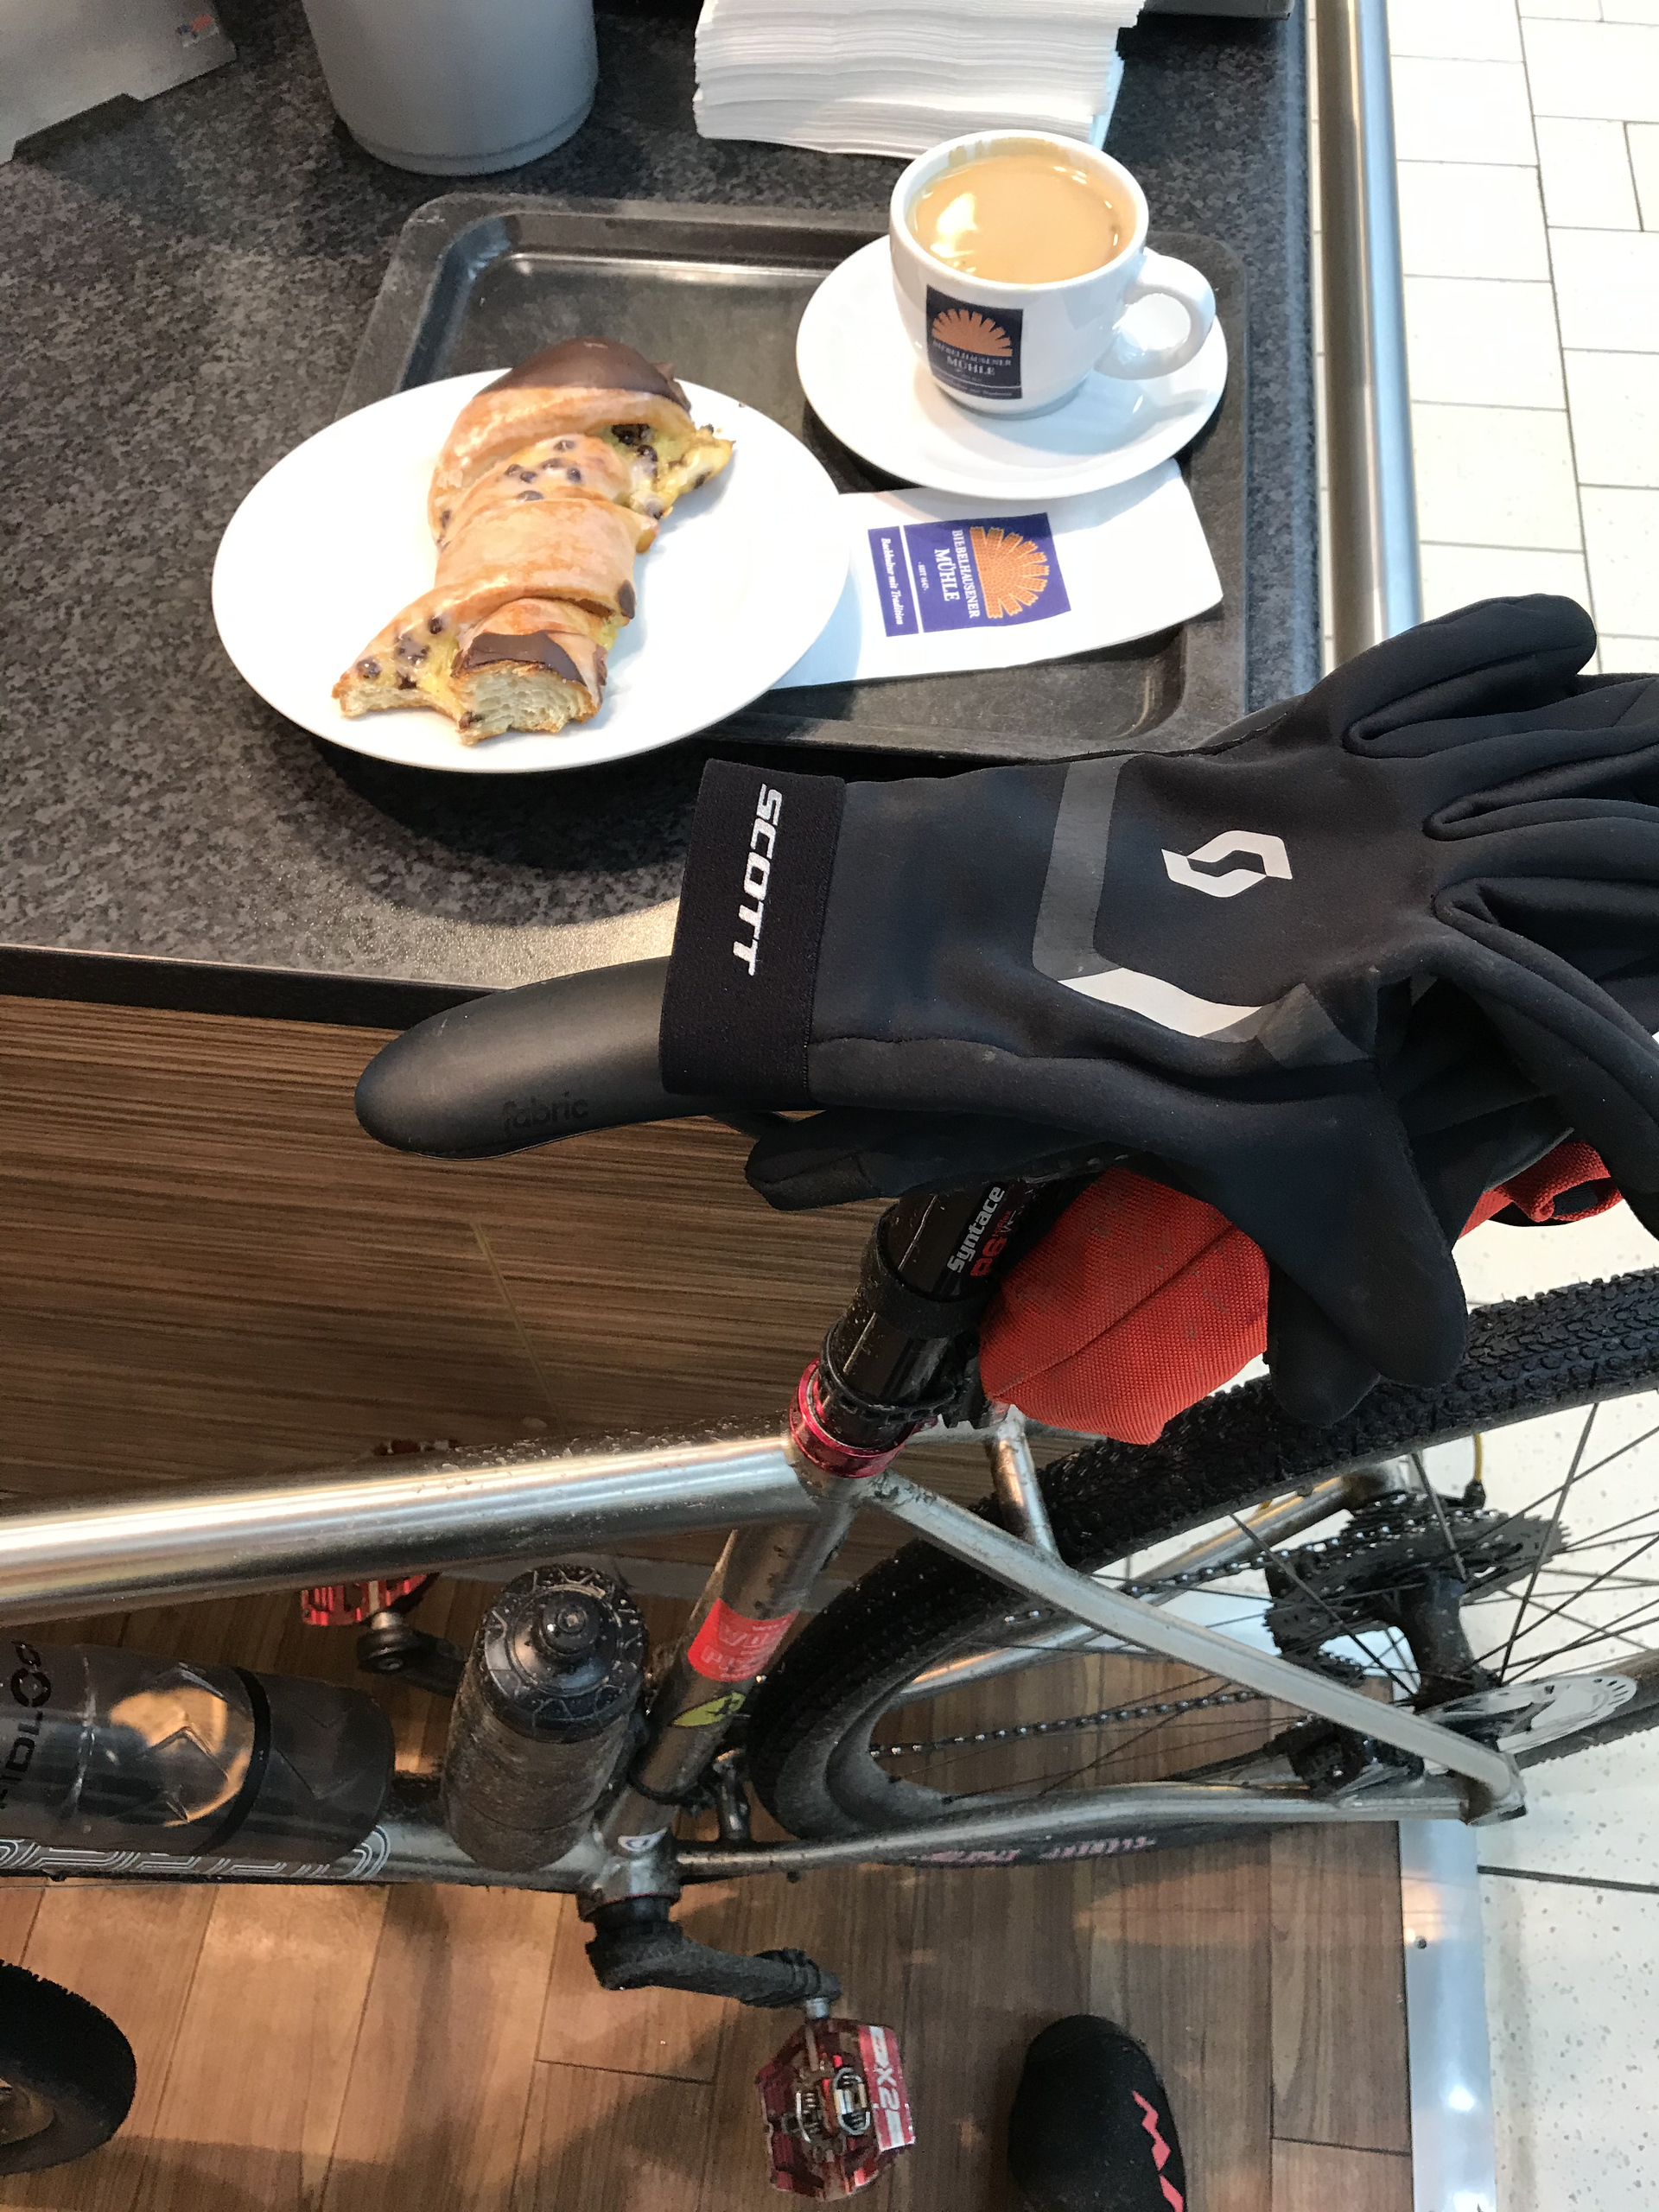 shot of a gravel bike leaning against a counter with a pastry and coffe on the counter